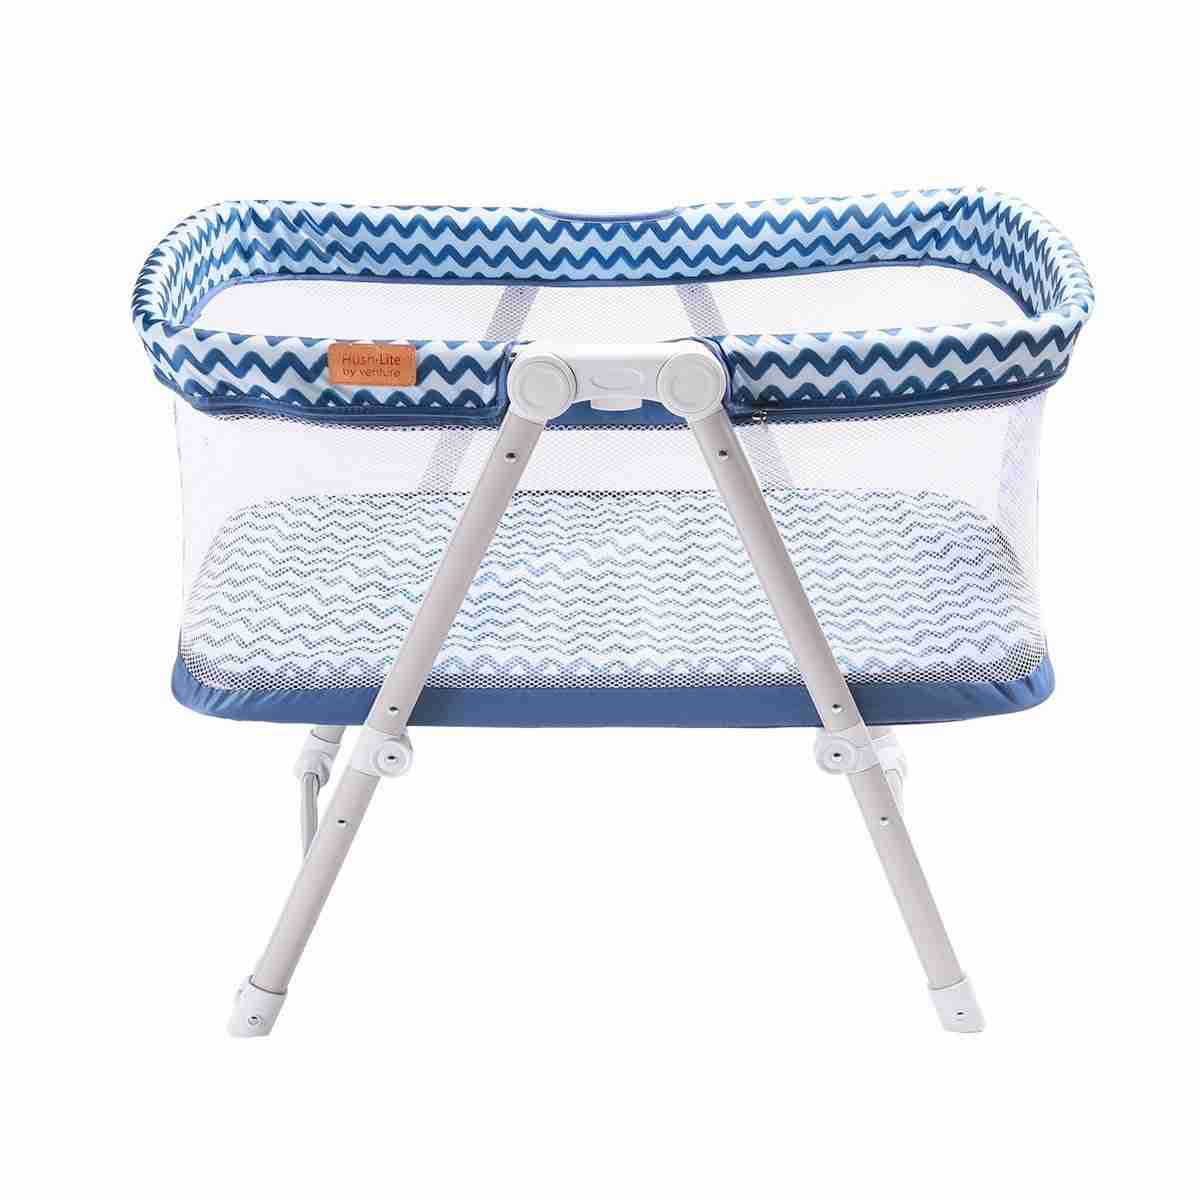 Hush-Lite travel crib in blue is perfect for sleeping on the go